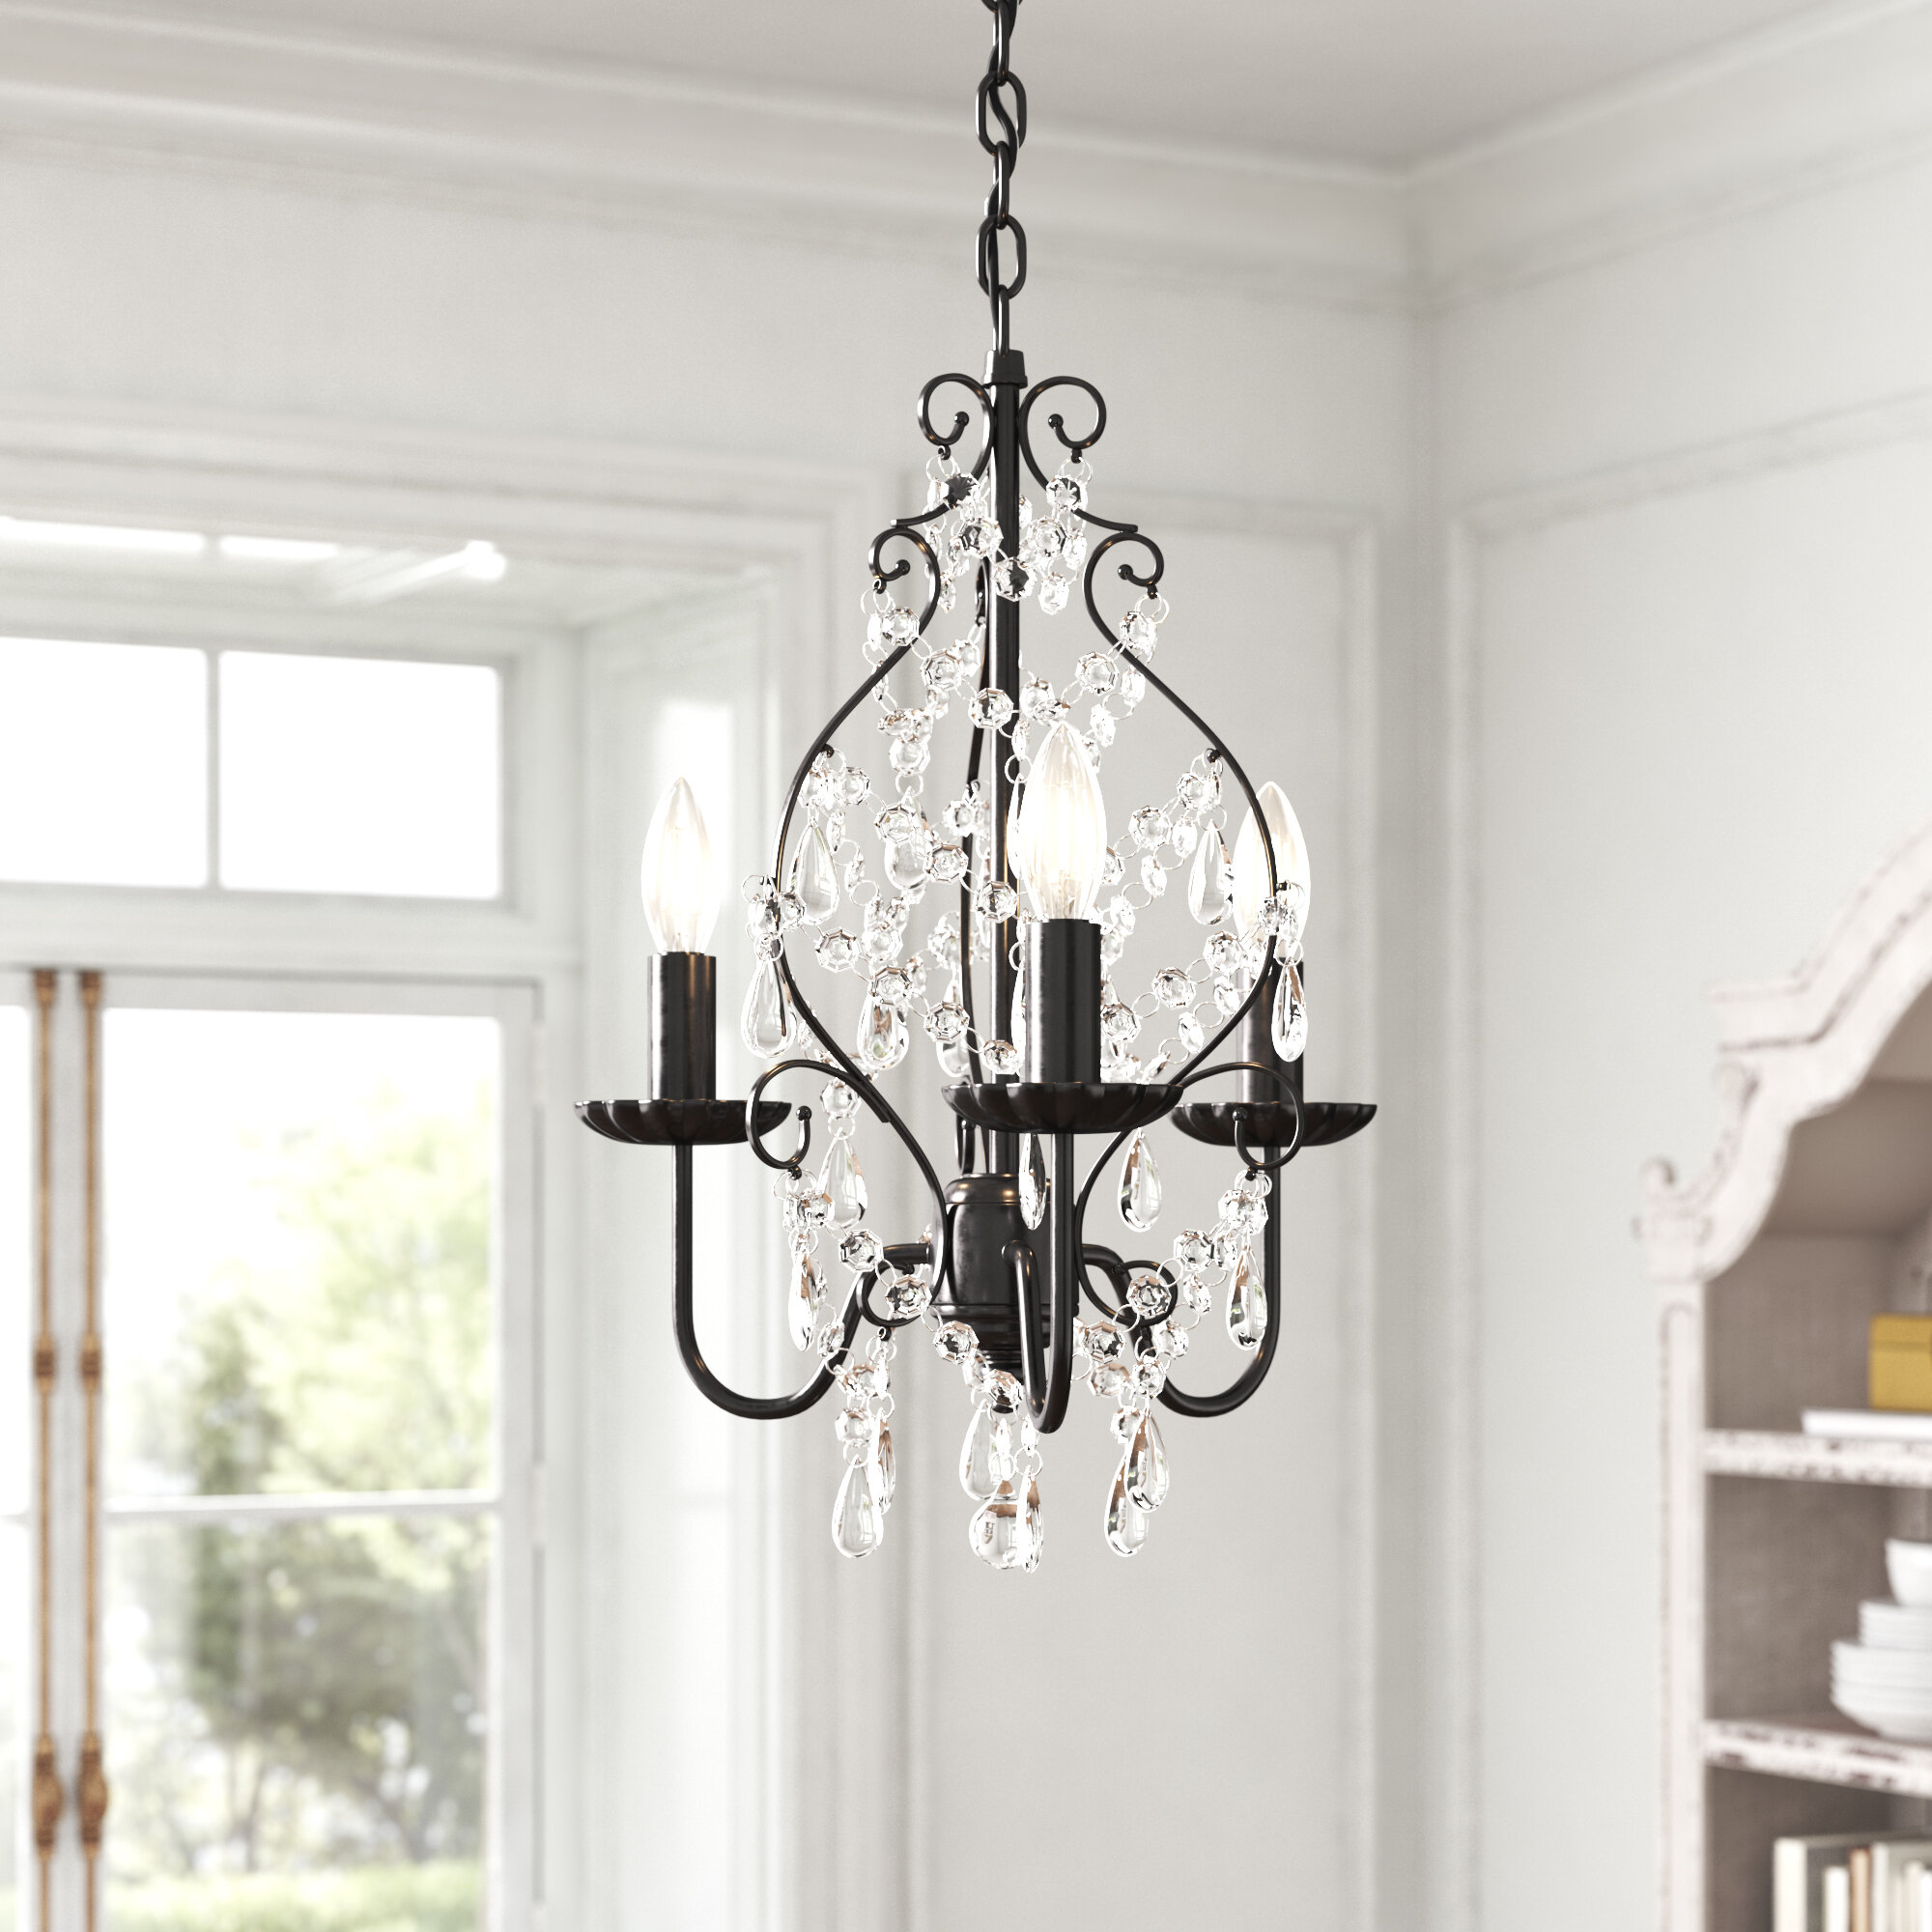 Kelly Clarkson Home Julianne 3 Light Candle Style Classic Chandelier Reviews Wayfair